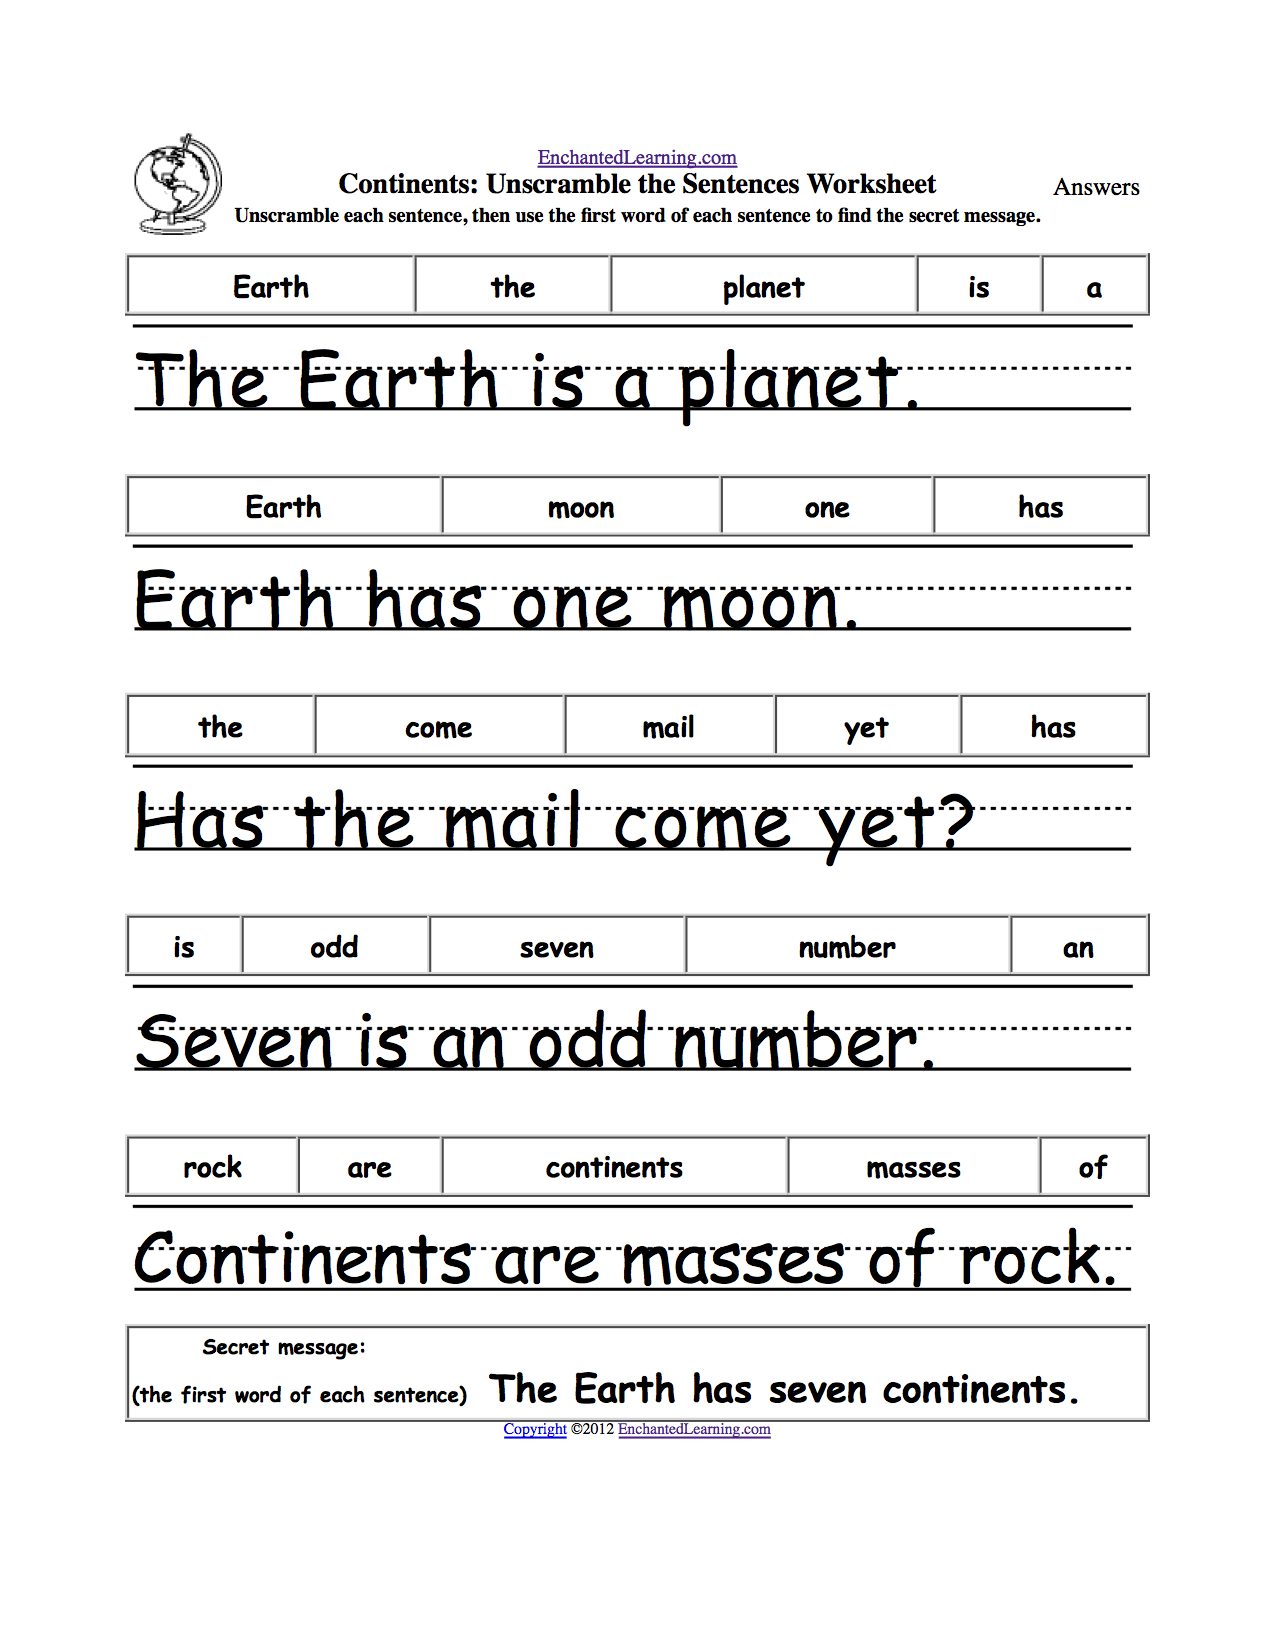 worksheet Sentence Building Worksheets unscramble the sentences worksheets enchantedlearning com sentences